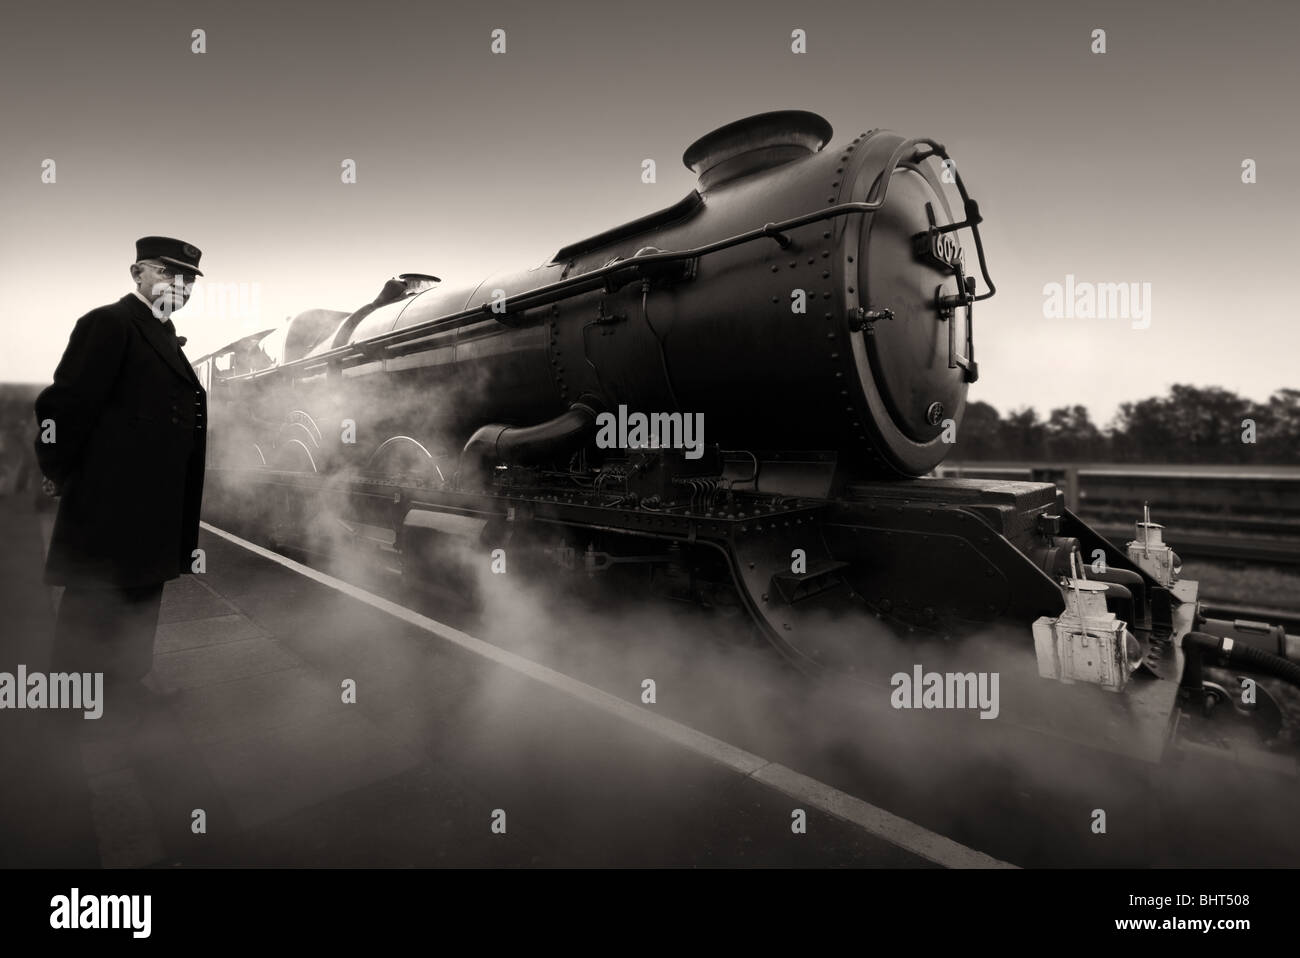 Preserved Steam locomotive and train guard awaiting departure time at a railway station in monotone. - Stock Image